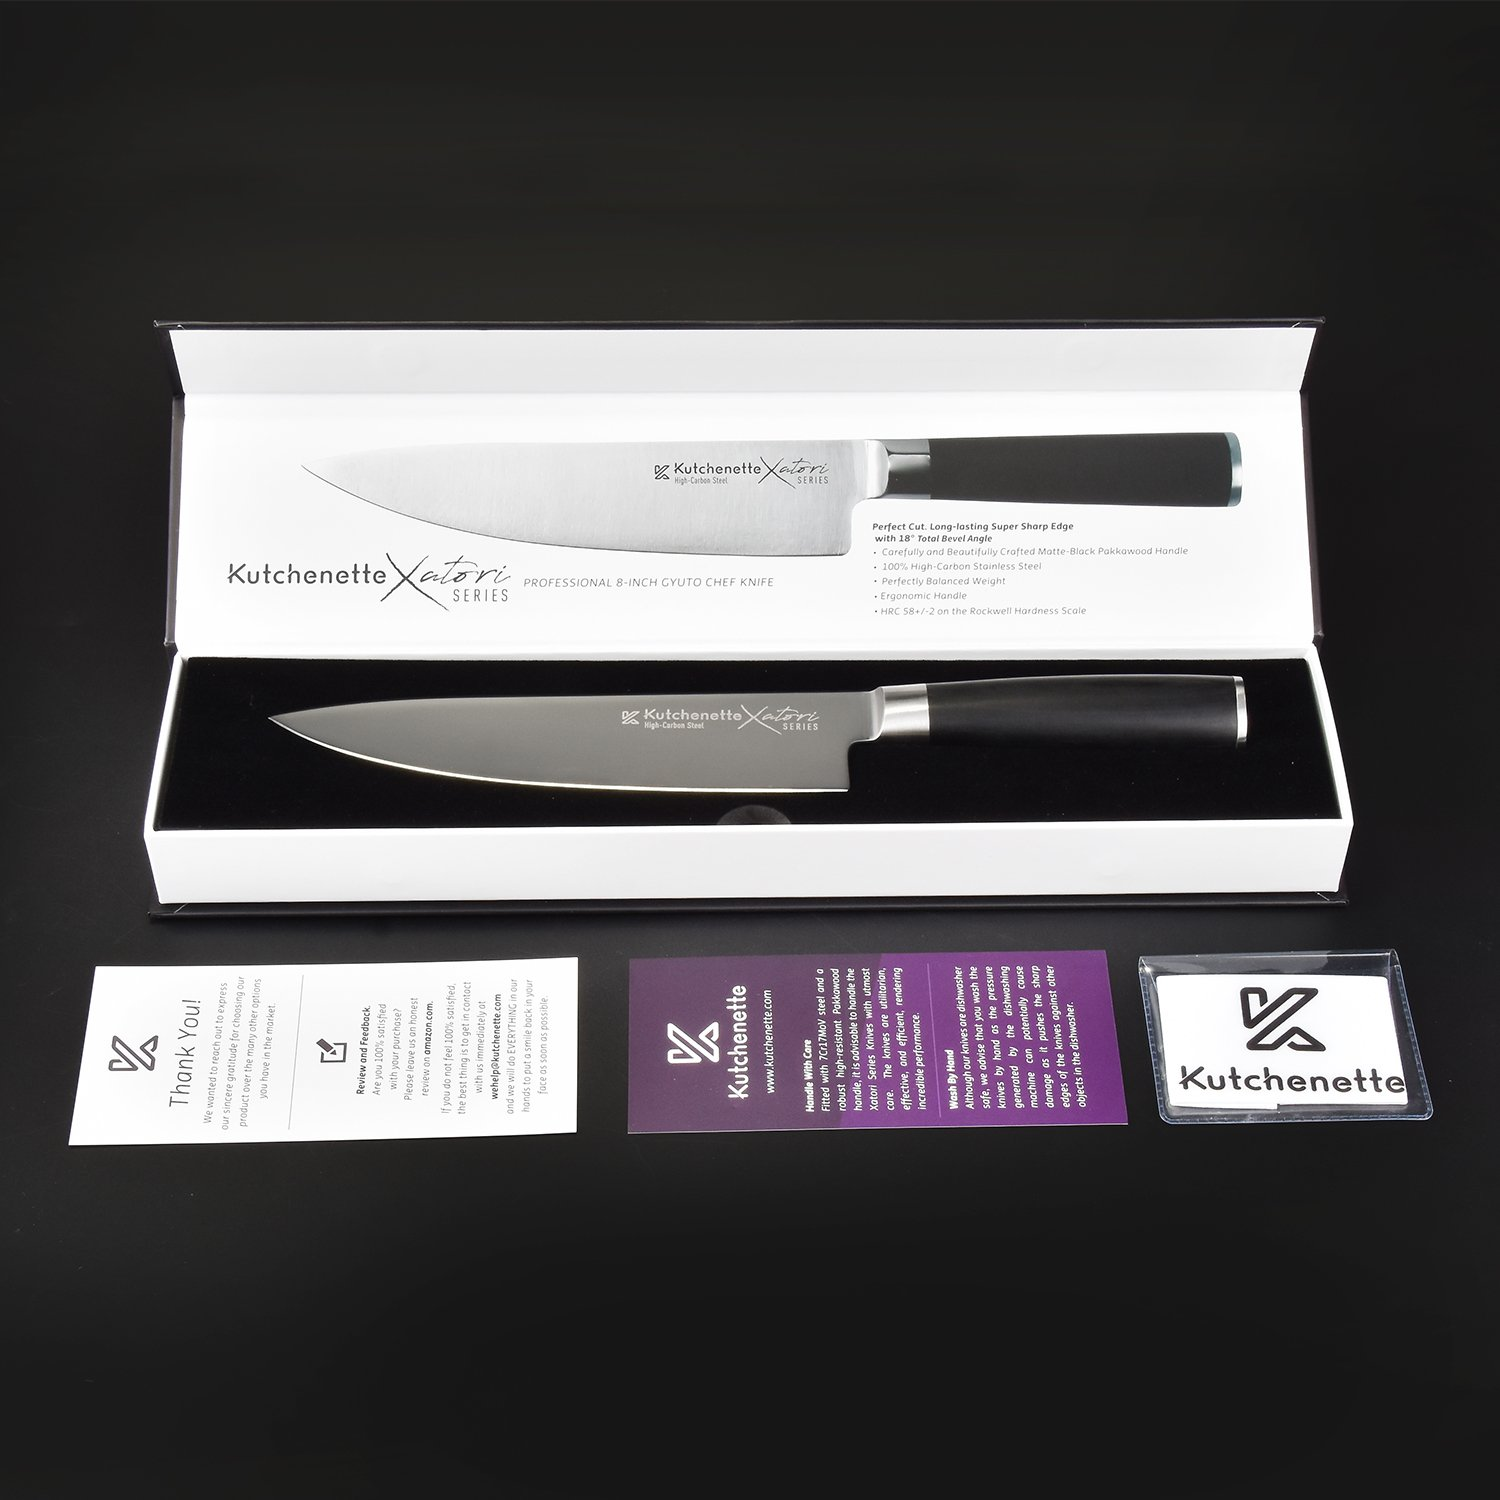 Sedge Chef Knife 8 Inch Professional Kitchen Knife Japanese High Carbon Stainless Steel With Black Pakkawood Handle With Case - Xatori Series by SEDGE (Image #3)